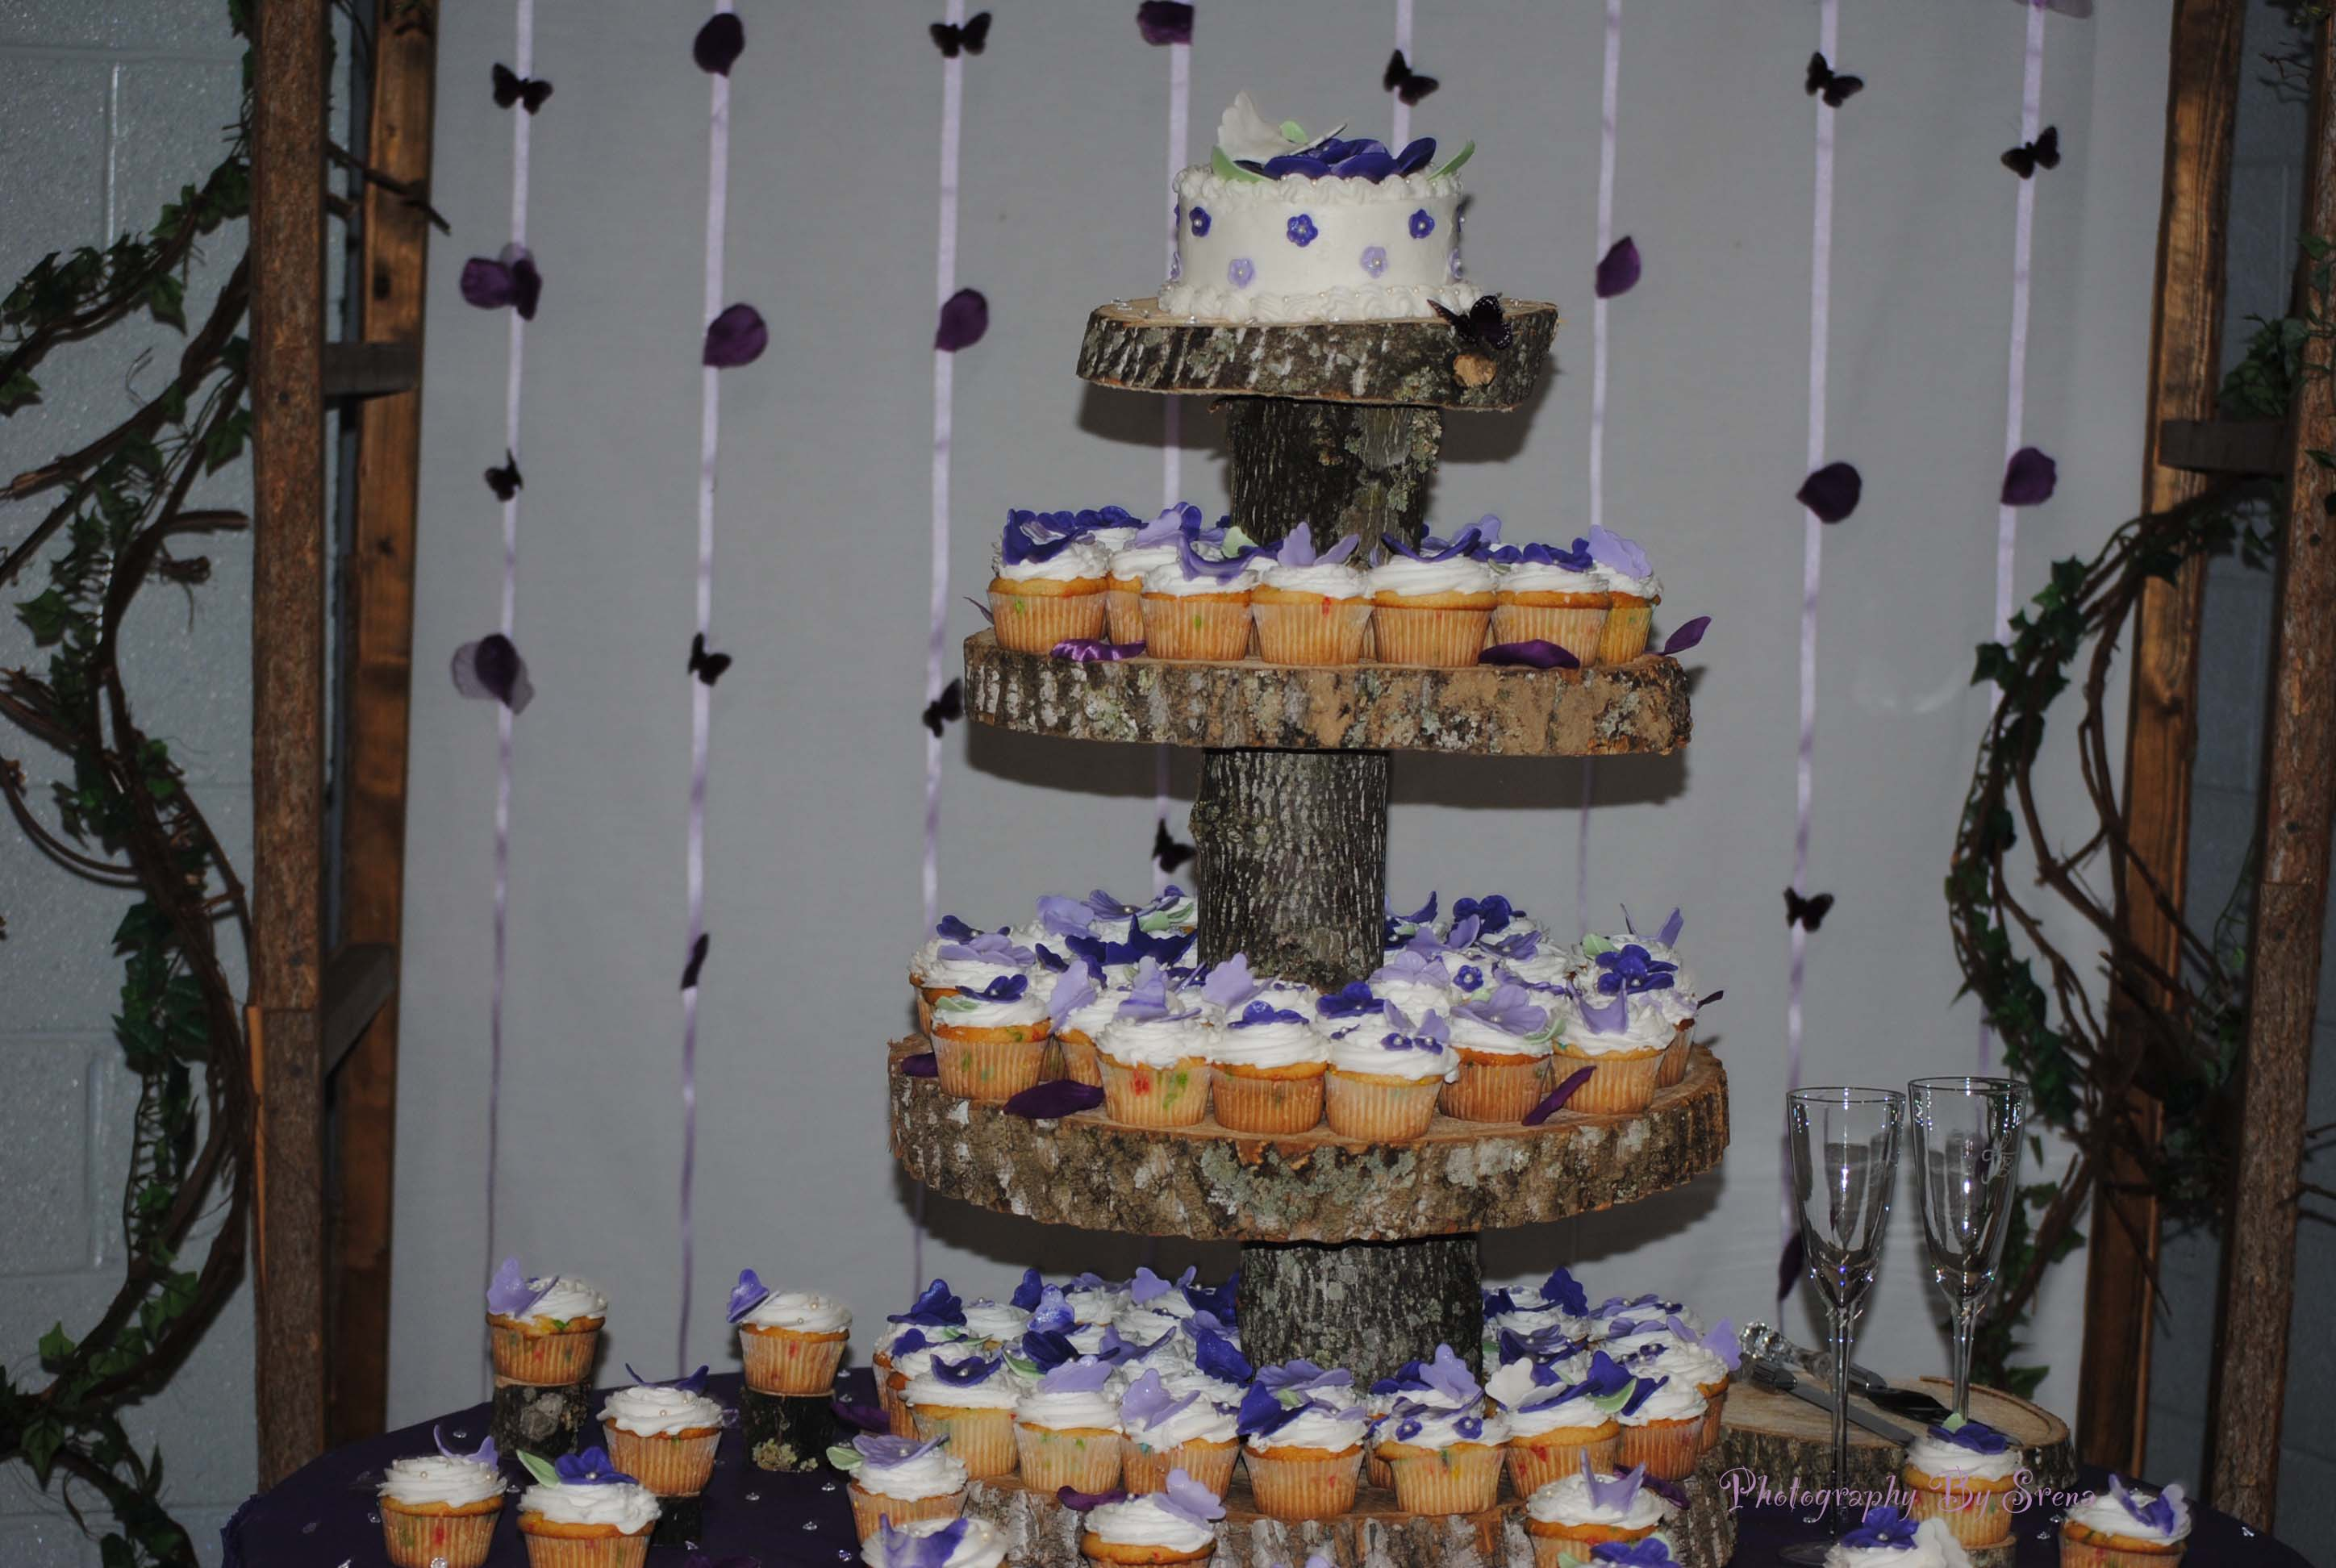 Uncategorized cupcake stands for weddings cheap - If